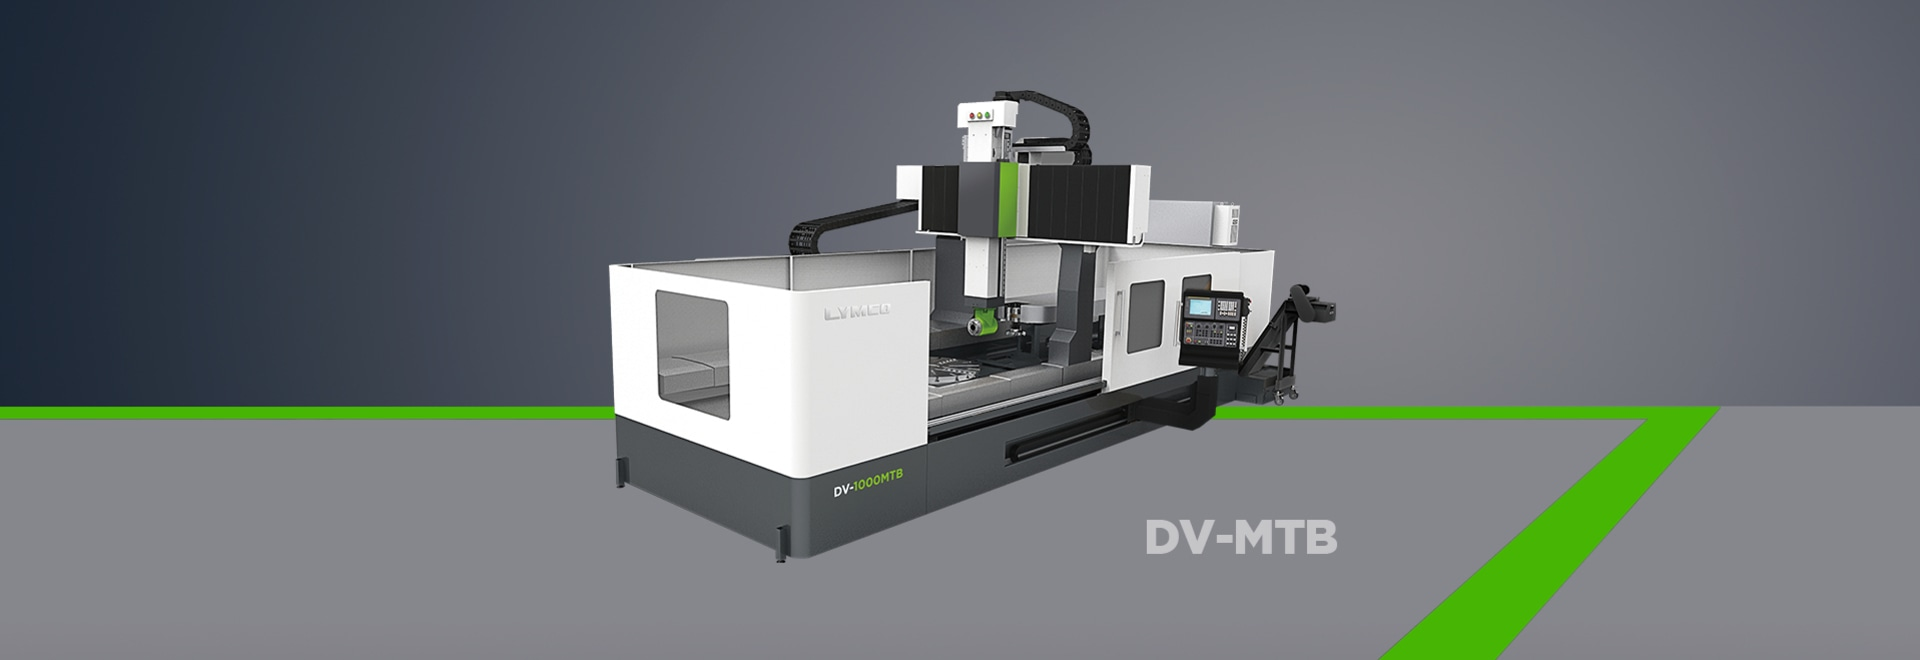 Enhance your profitability with LYMCO's highly customized DV-MTB